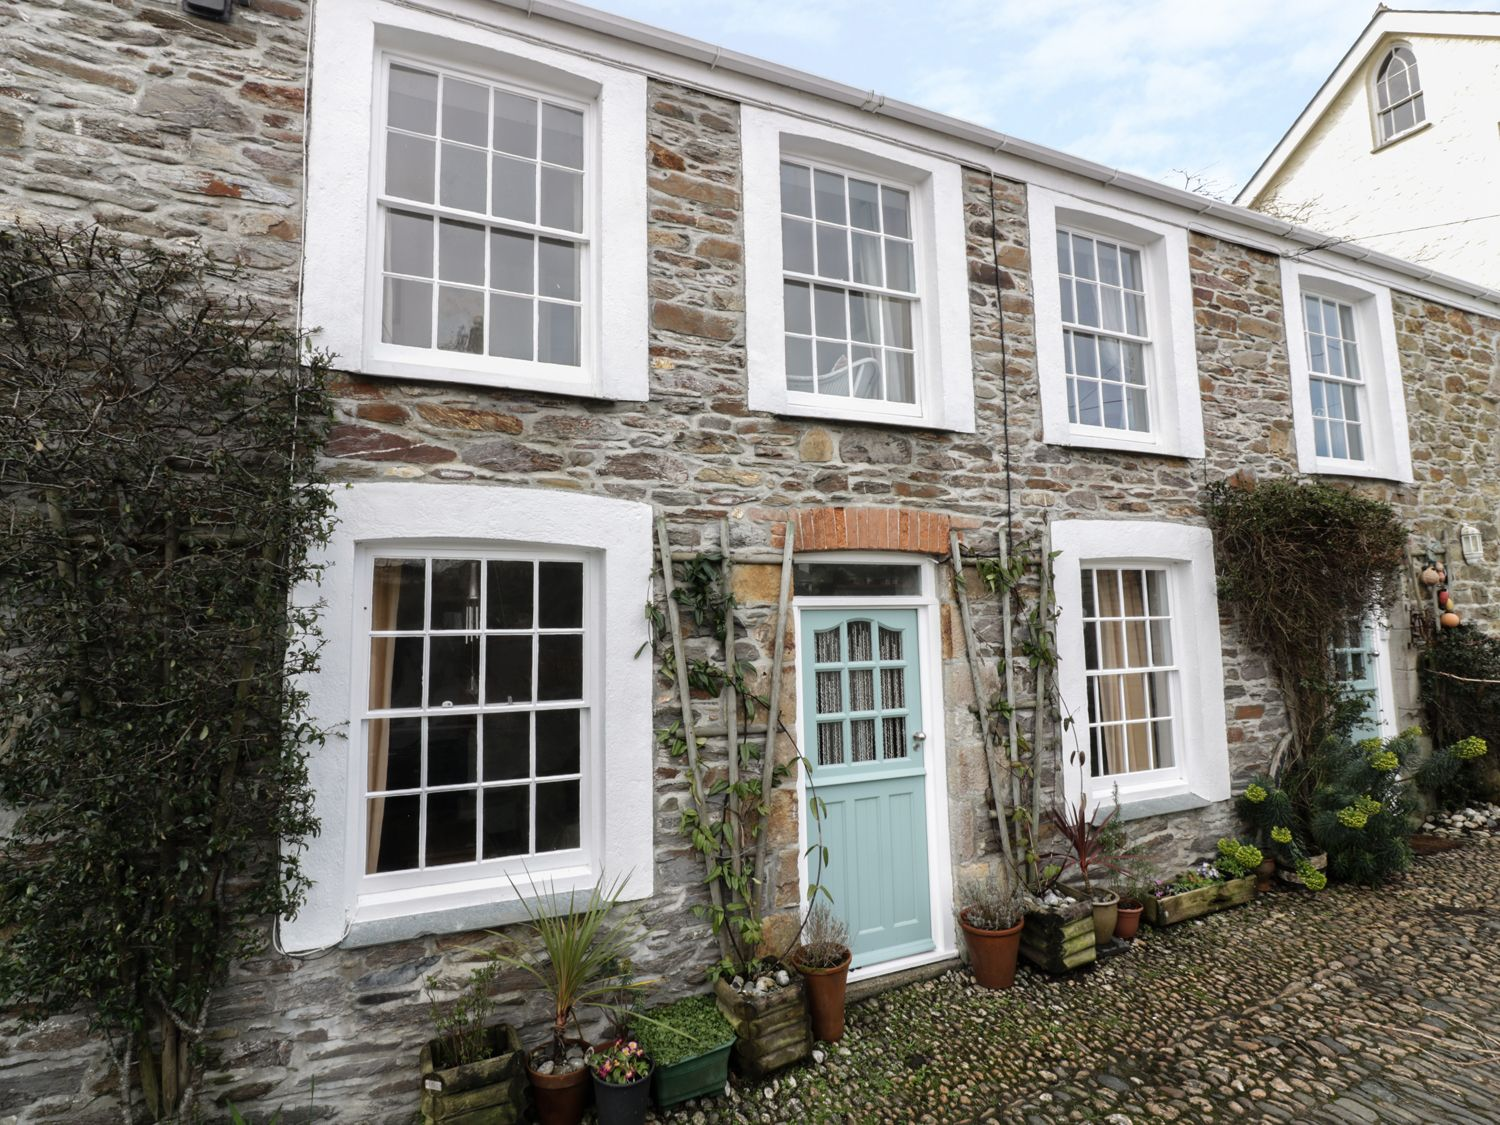 4 Elm Terrace - Cornwall - 2012 - photo 1